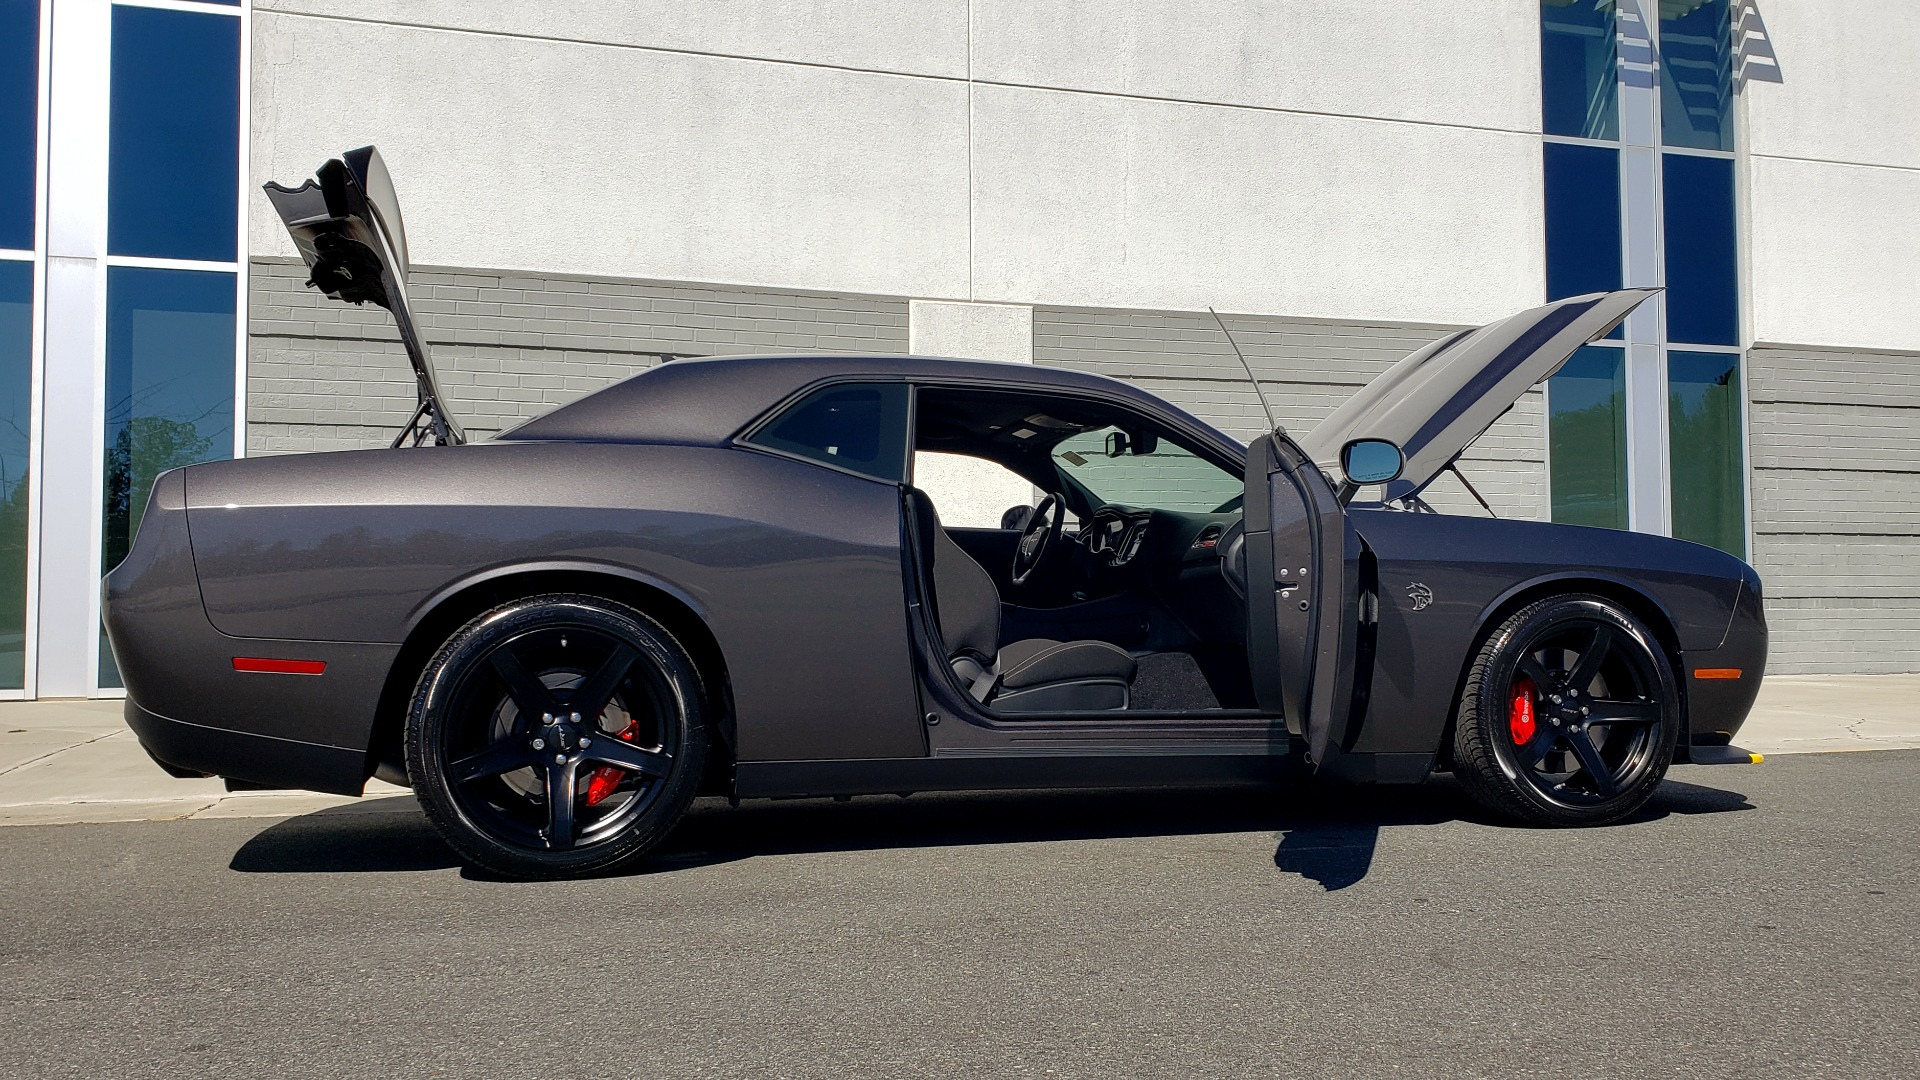 Used 2020 Dodge CHALLENGER SRT HELLCAT (717HP) / NAV / AUTO / CLOTH / REARVIEW / LOW MILES for sale $64,999 at Formula Imports in Charlotte NC 28227 14